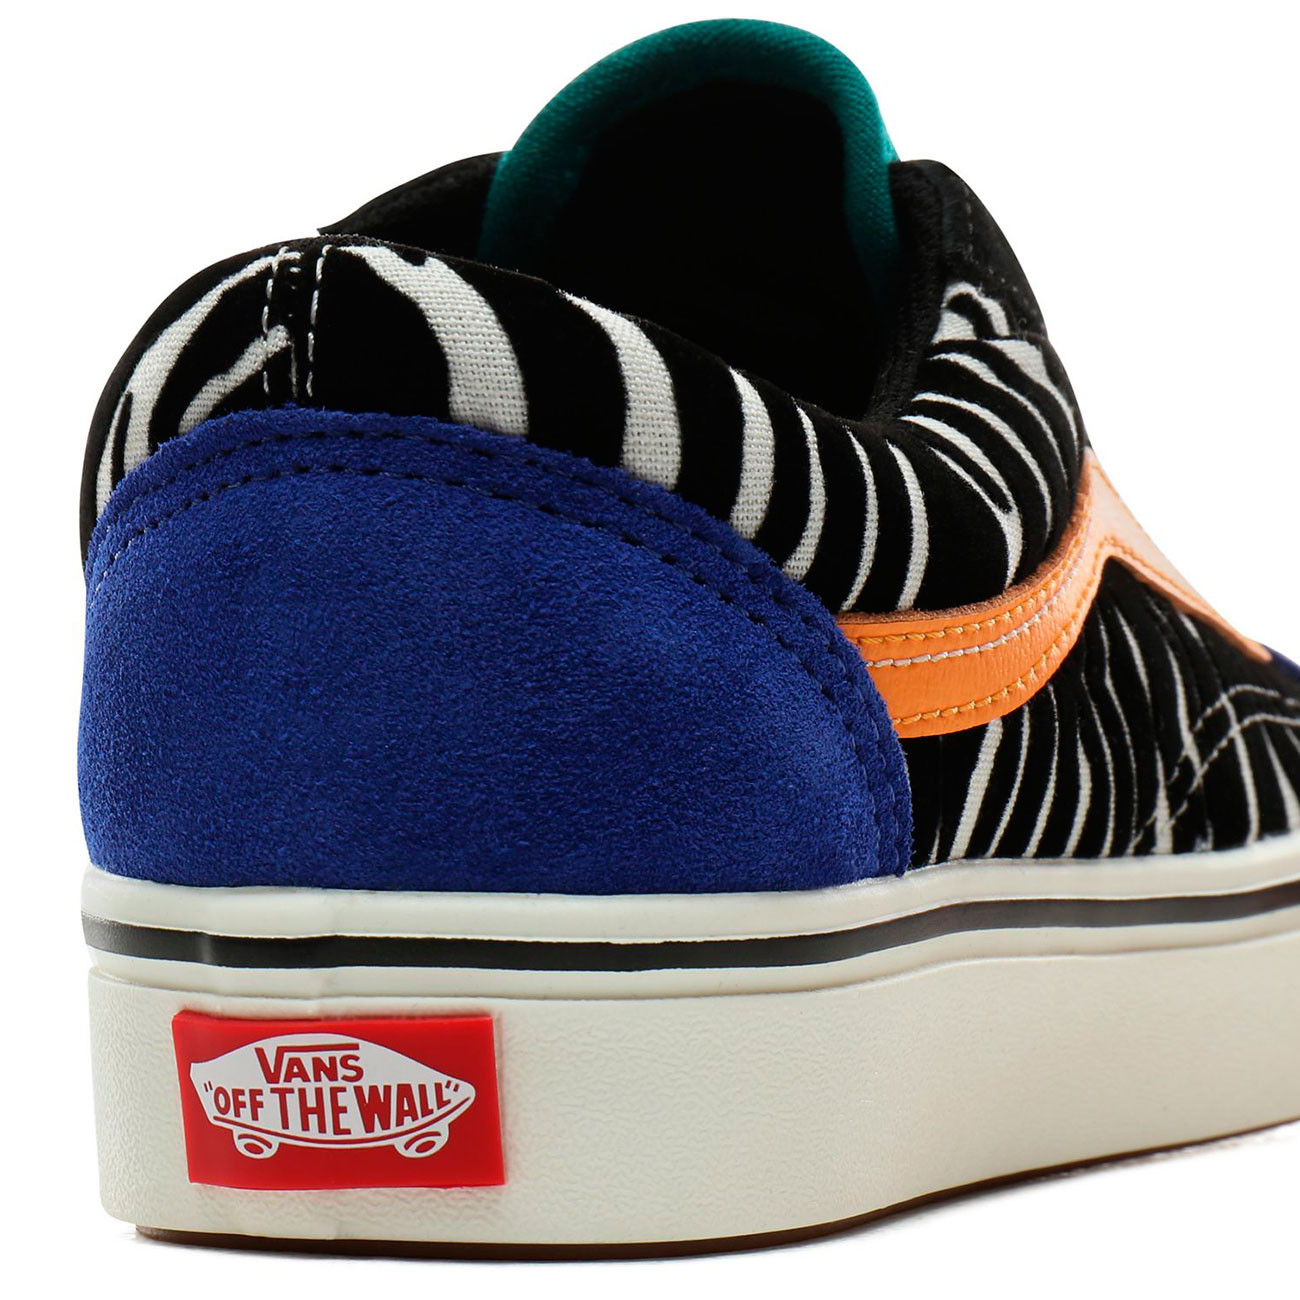 Comfycush Old Skool zebra tidepoolsurf the web